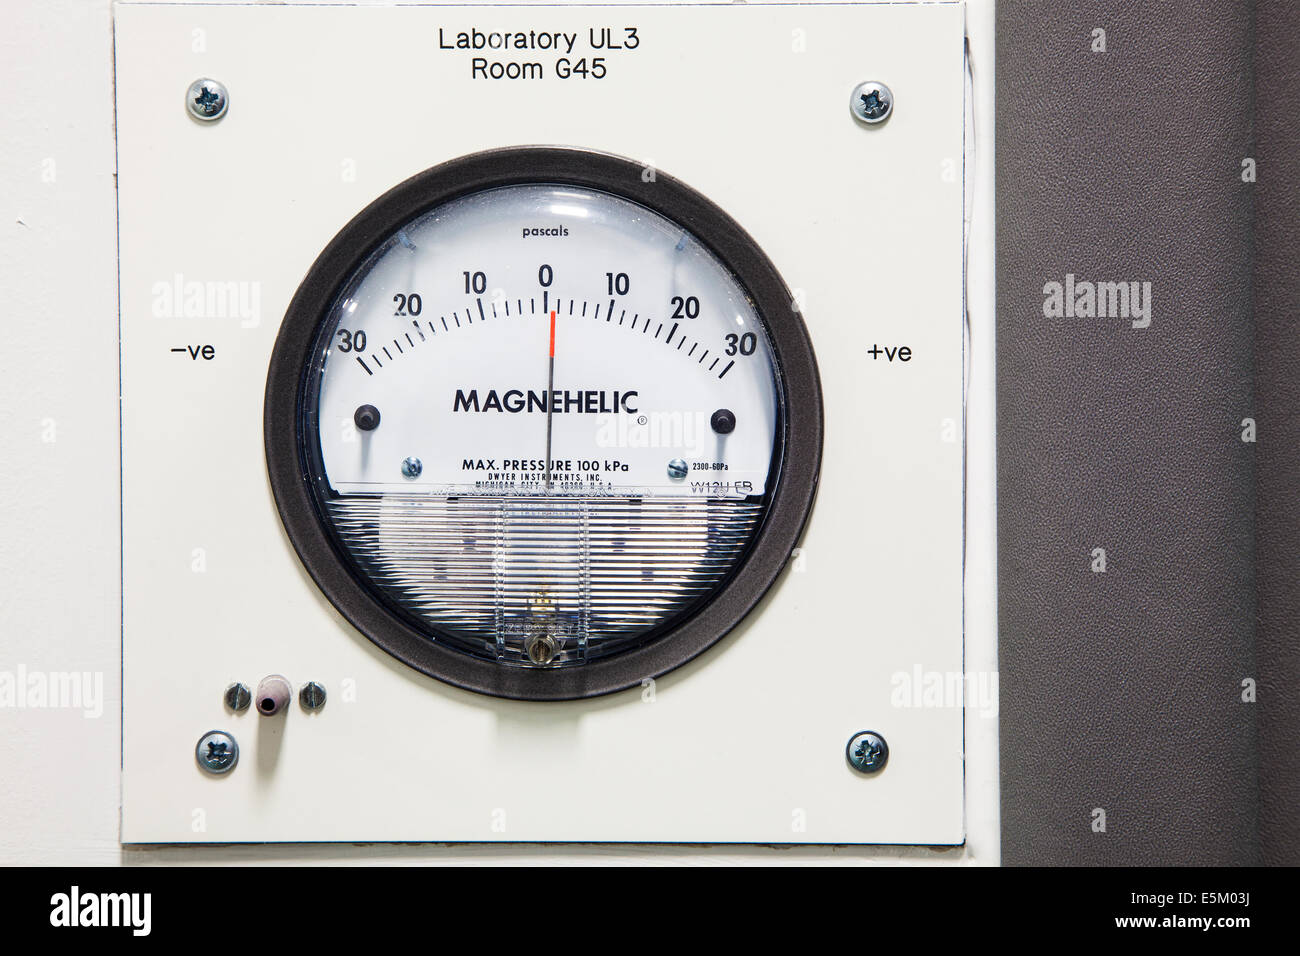 A differential pressure gauge using Pascal units of measurement. - Stock Image